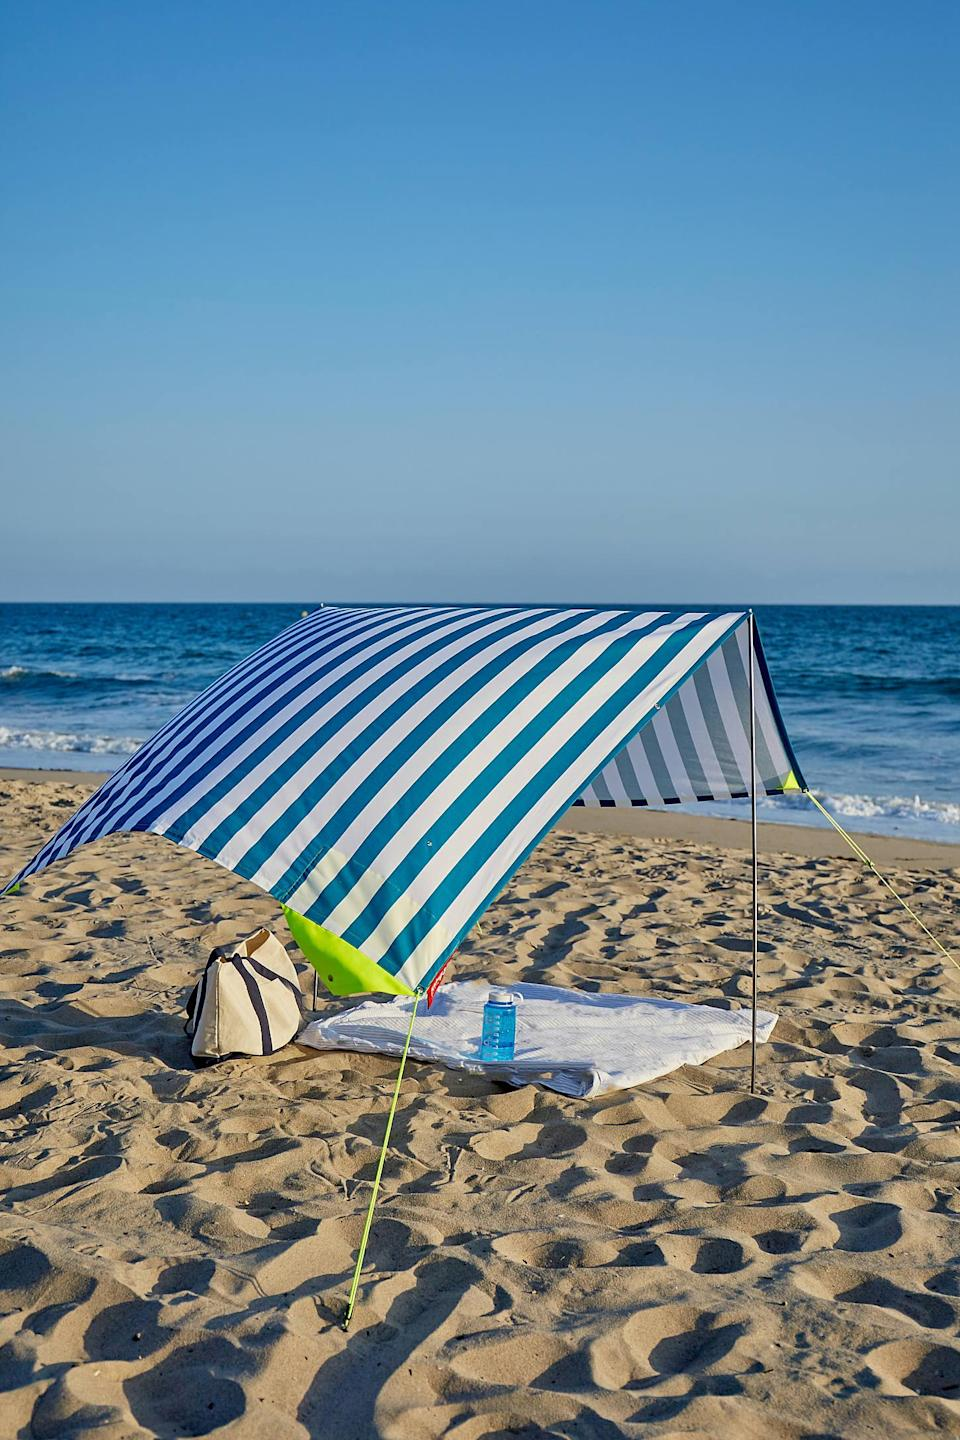 """This eye-catching sun shelter is ideal for clear-skied beach days, with a cotton shade that comes in seven sunny colorways so that your friends can find you easily when its time to meet up. <br> <br> <strong>Fatboy</strong> UV Filter Portable Beach Tent, $, available at <a href=""""https://go.skimresources.com/?id=30283X879131&url=https%3A%2F%2Fwww.urbanoutfitters.com%2Fshop%2Ffatboy-x-miasun-uv-filter-portable-beach-tent"""" rel=""""nofollow noopener"""" target=""""_blank"""" data-ylk=""""slk:Urban Outfitters"""" class=""""link rapid-noclick-resp"""">Urban Outfitters</a>"""